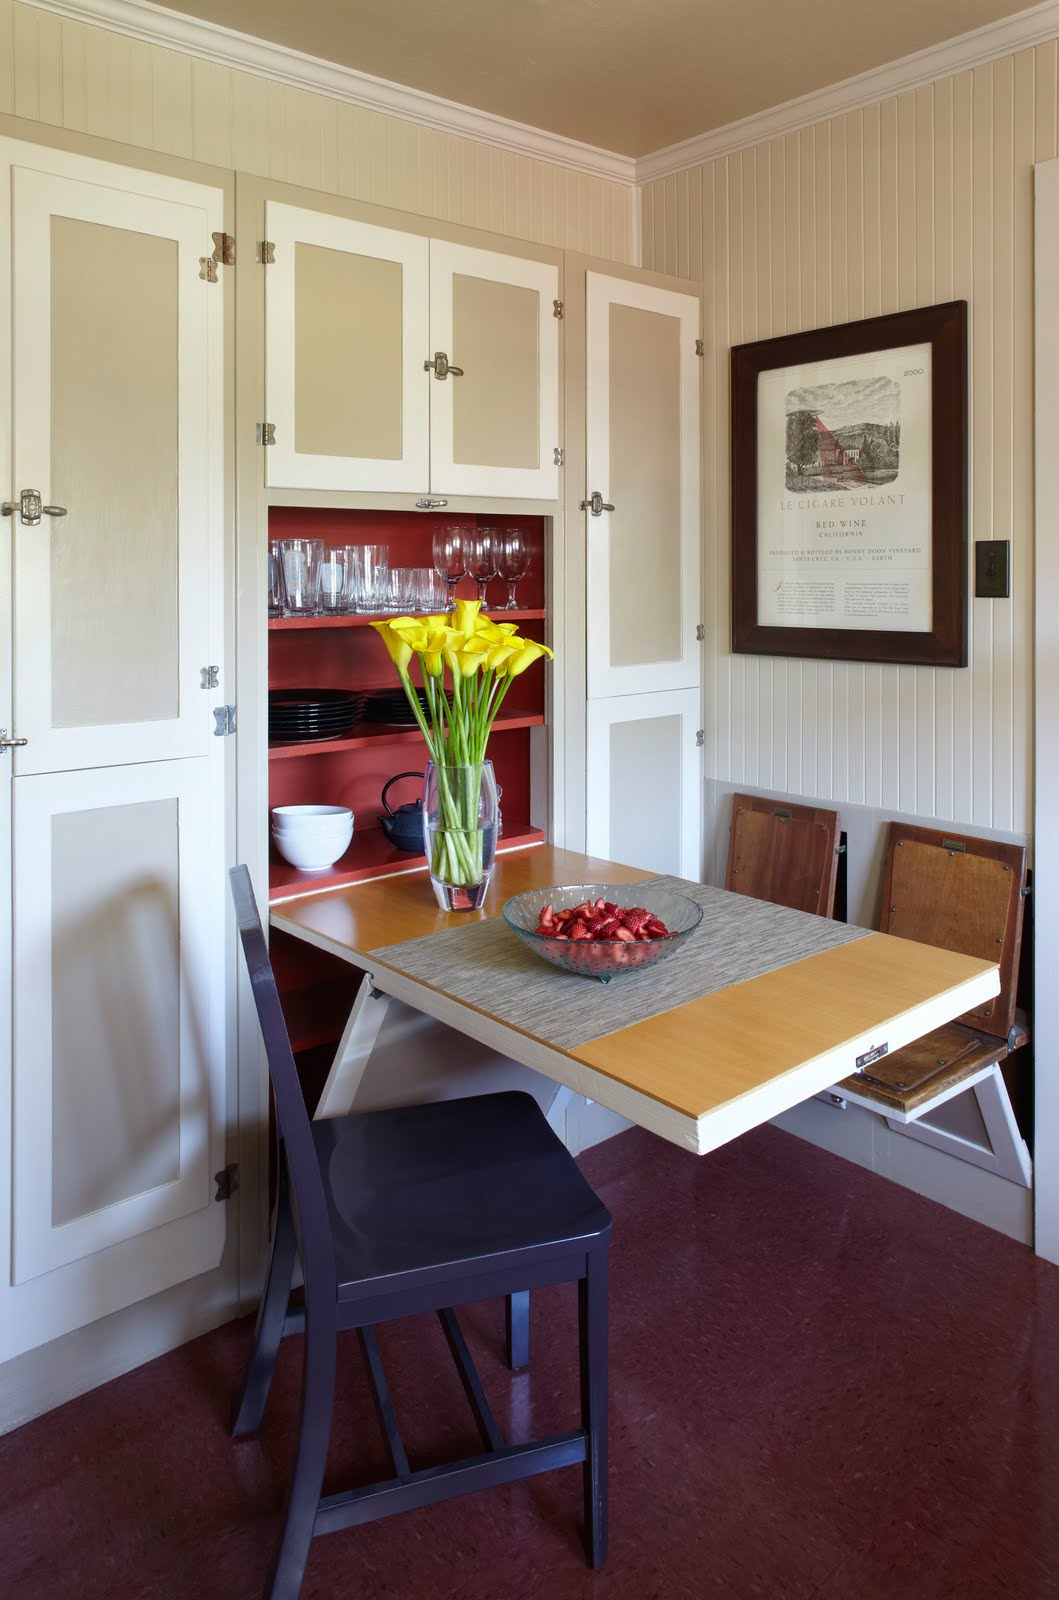 Small Dining Room With Fold Down Dining Table And Chairs Near Cabinet - 43+ Small Space Up And Down House Design Gif